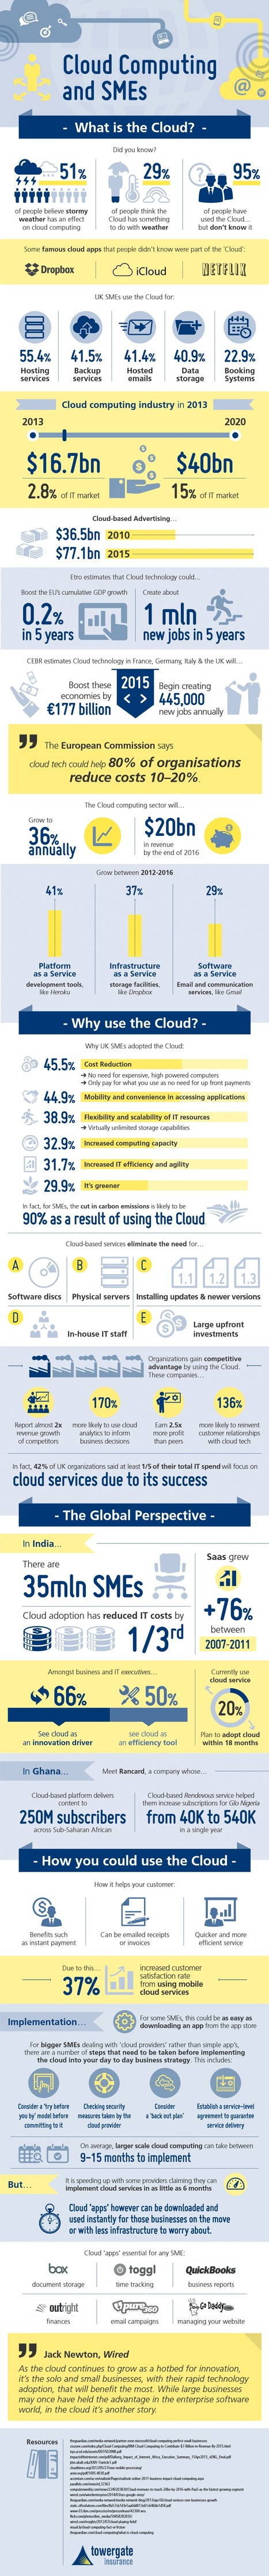 INFOGRAPHIC: Cloud Computing And SMEs | Cloud Central | Scoop.it